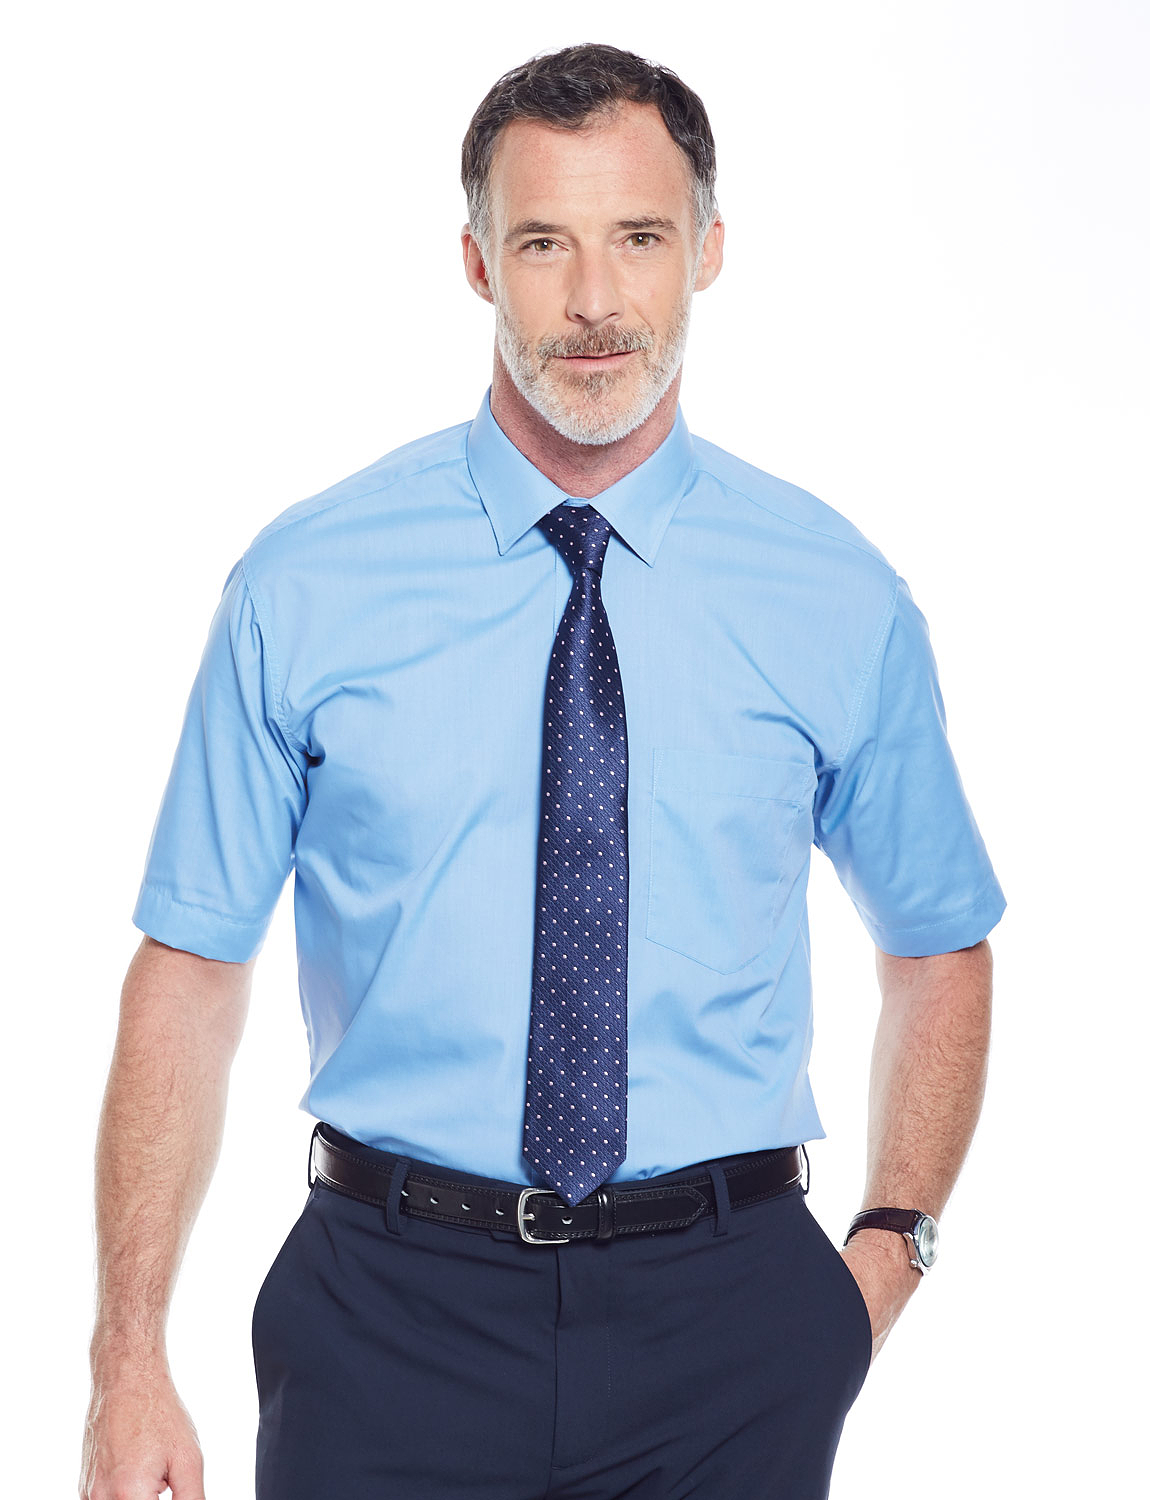 short sleeve with tie photo - 1